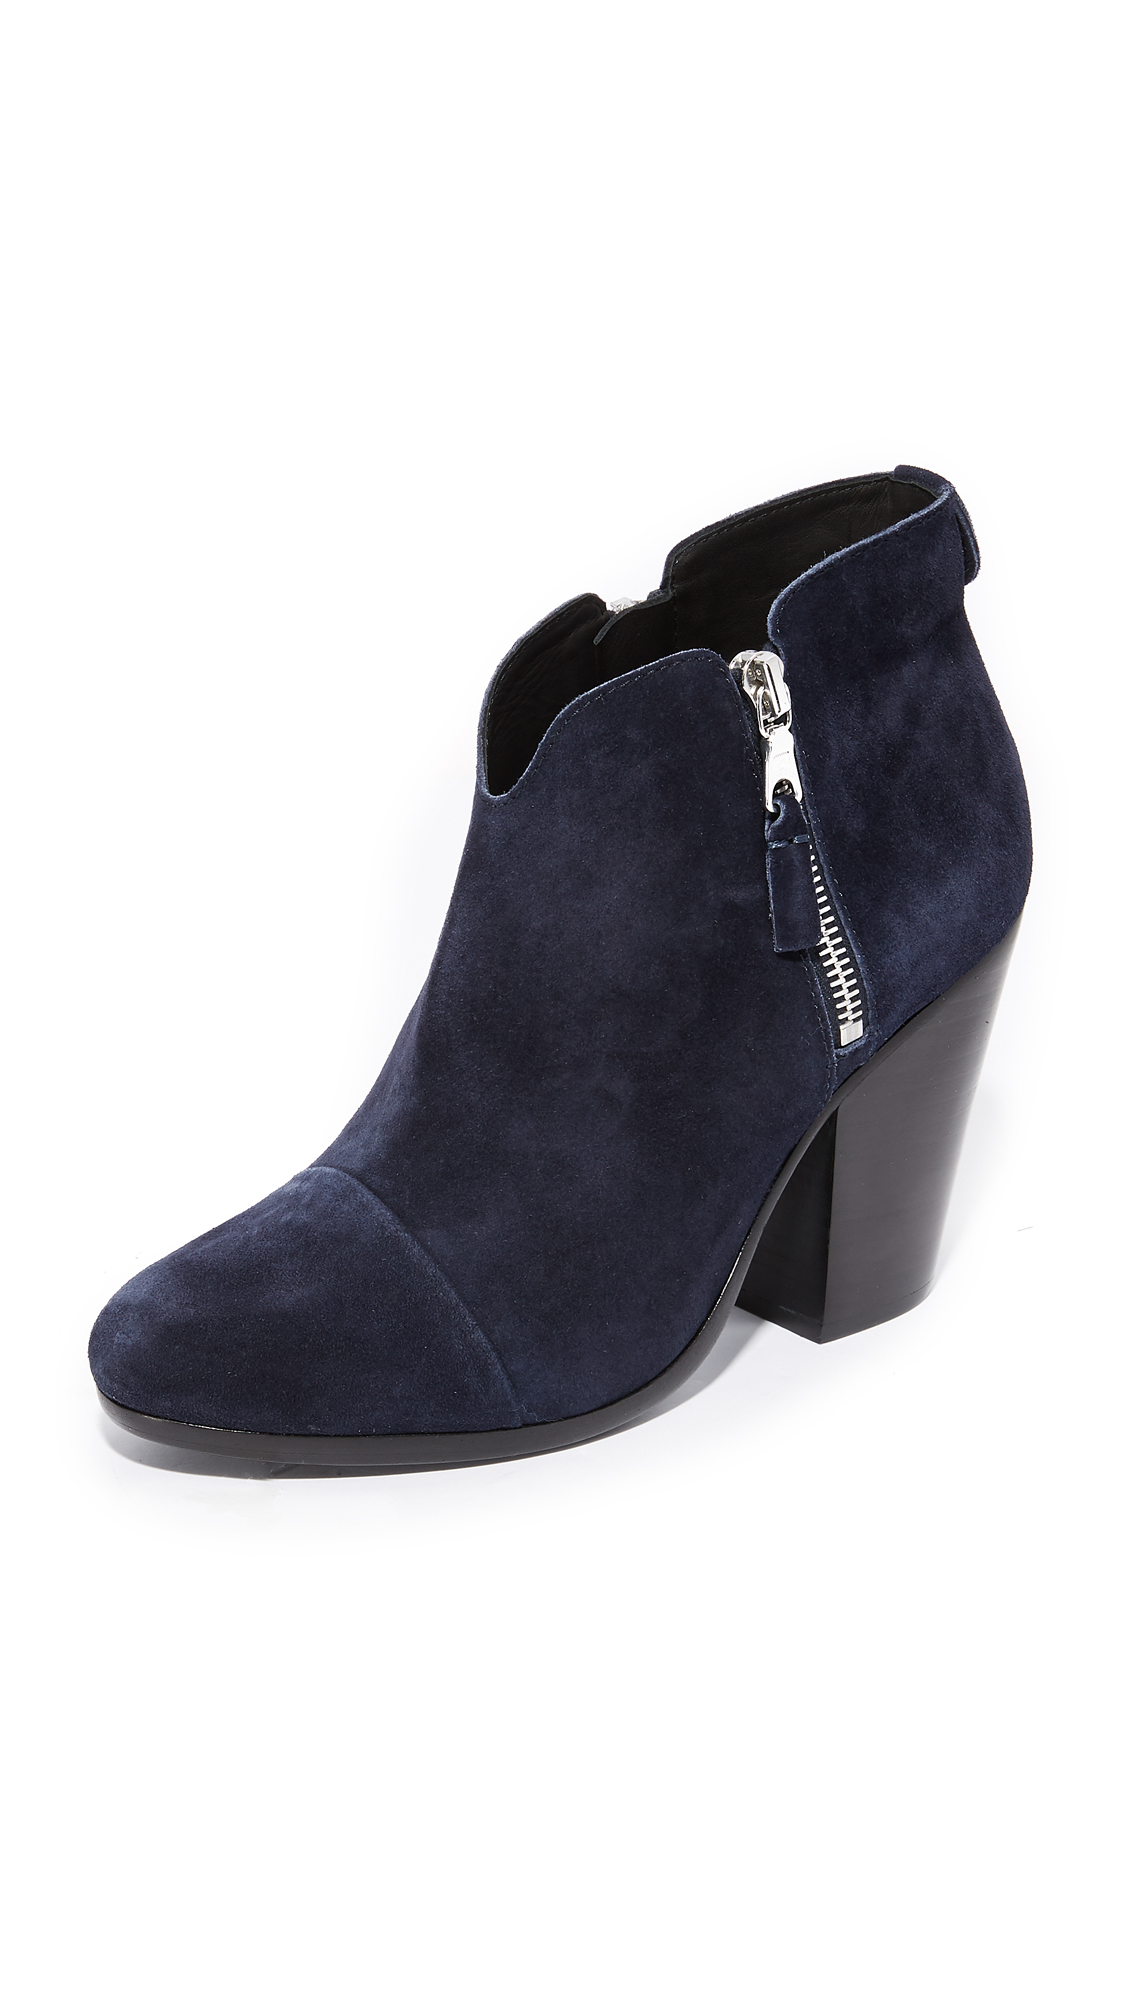 Rag & Bone Margot Booties - Navy